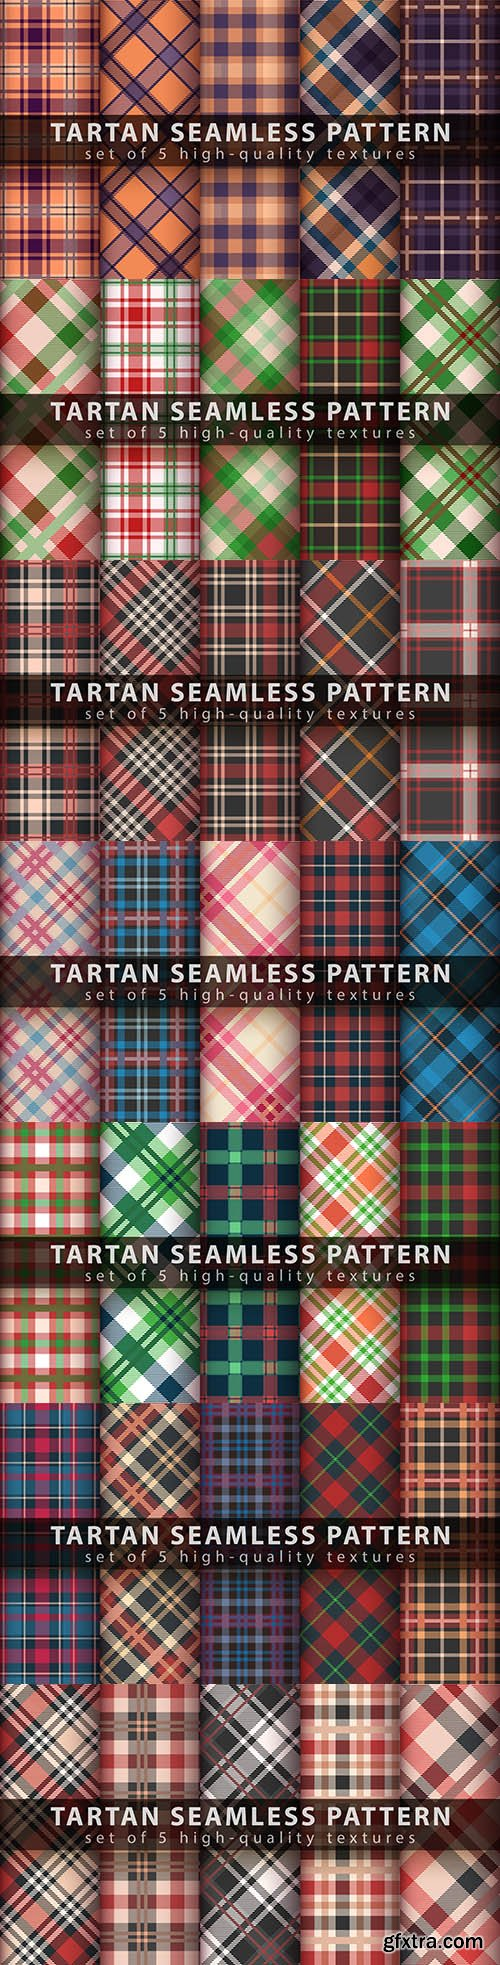 Classic tartan seamless pattern design set illustration